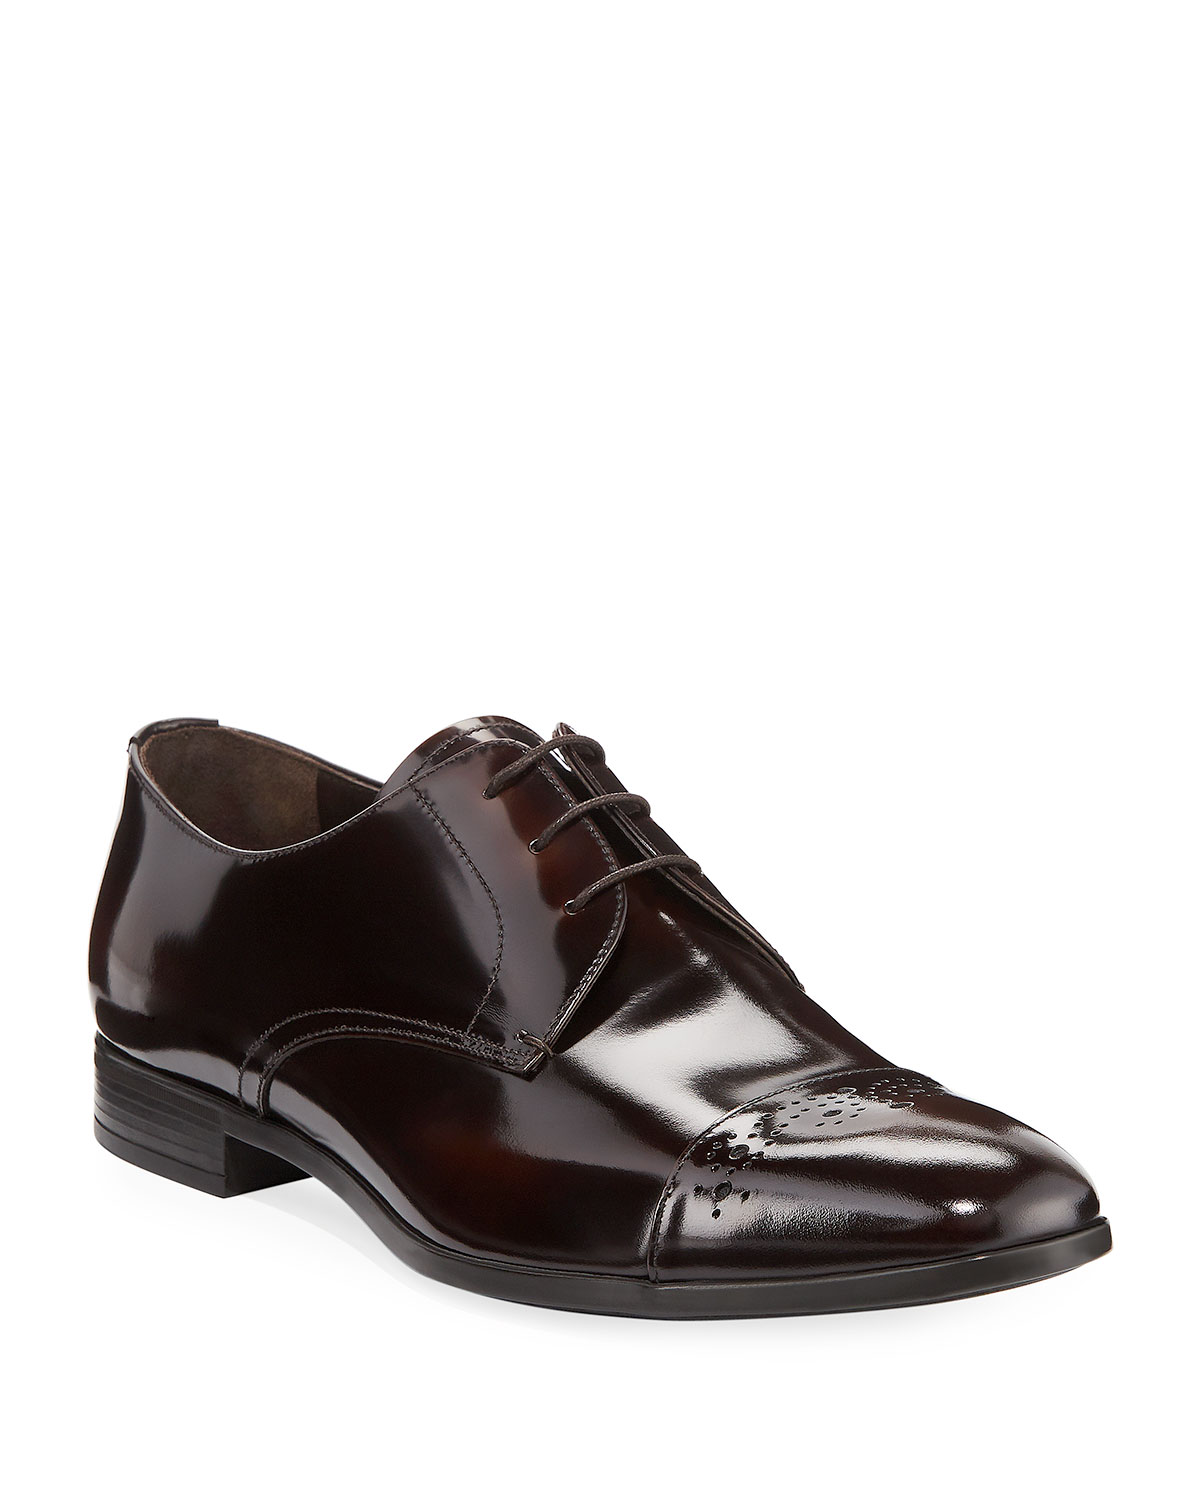 bb61c1c6201 Prada Spazzolato Fume Lace-Up Oxford